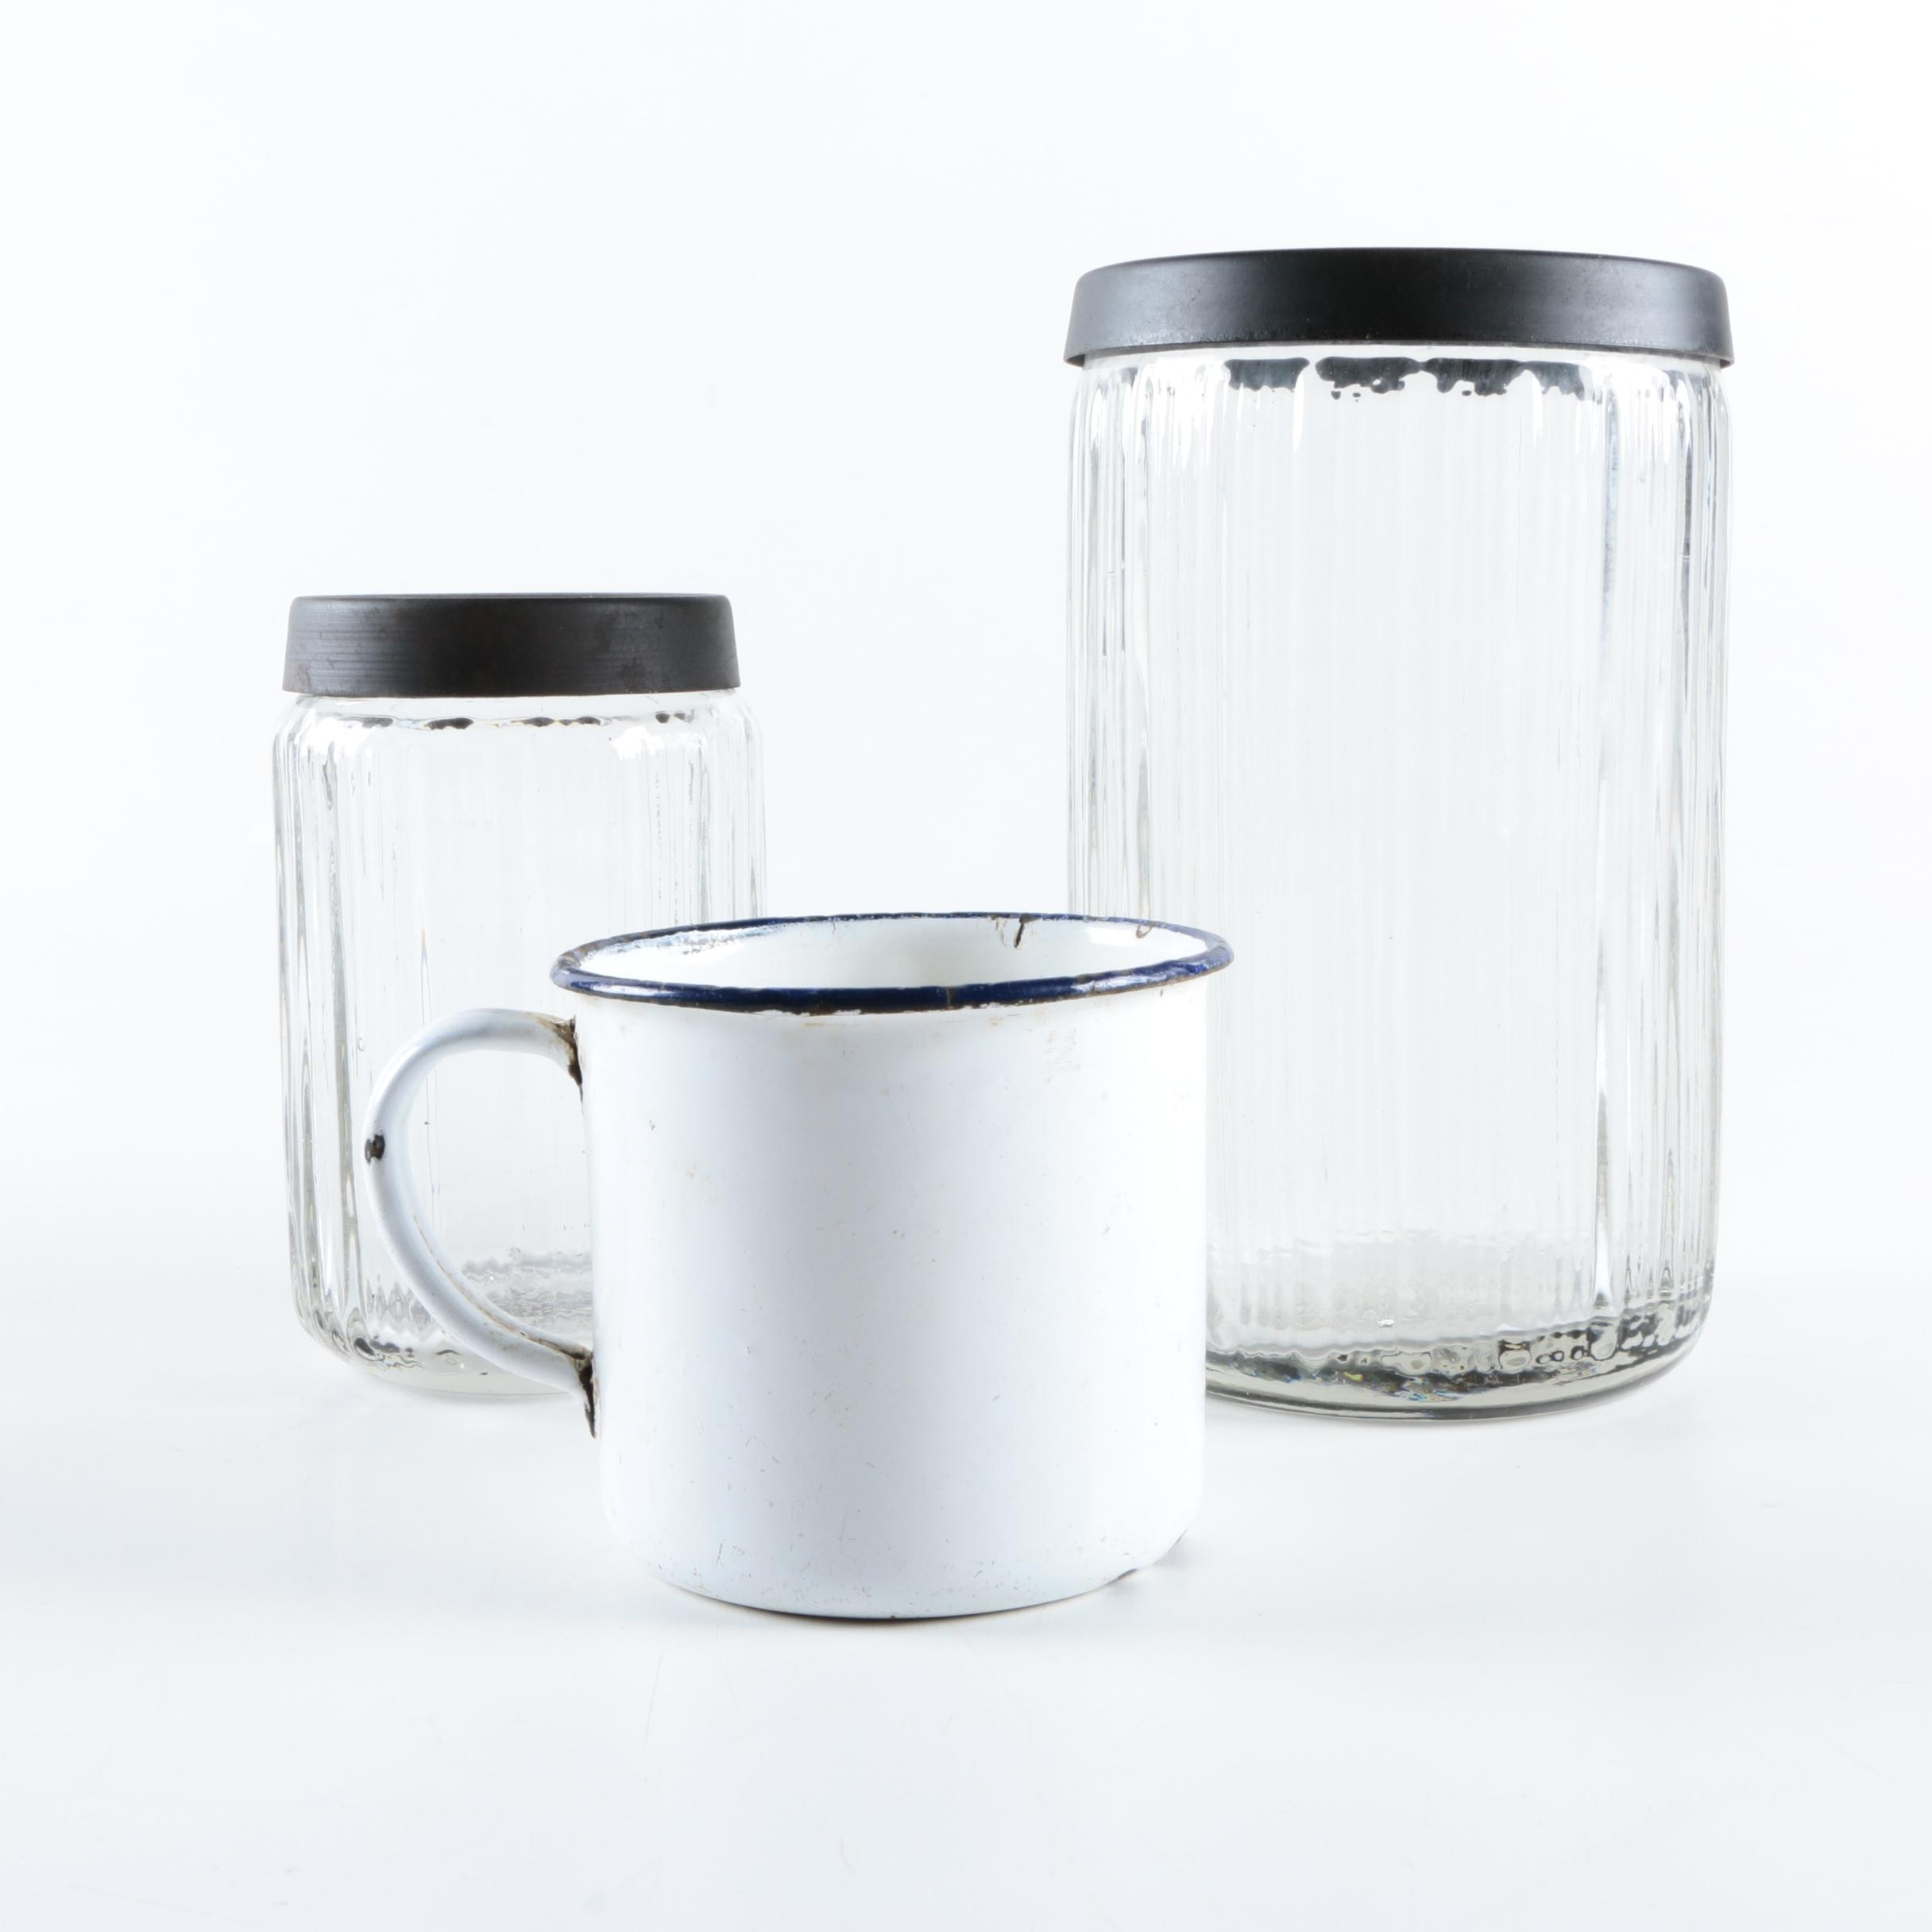 Glass and Metal Kitchen Canisters and Enamelware Mug